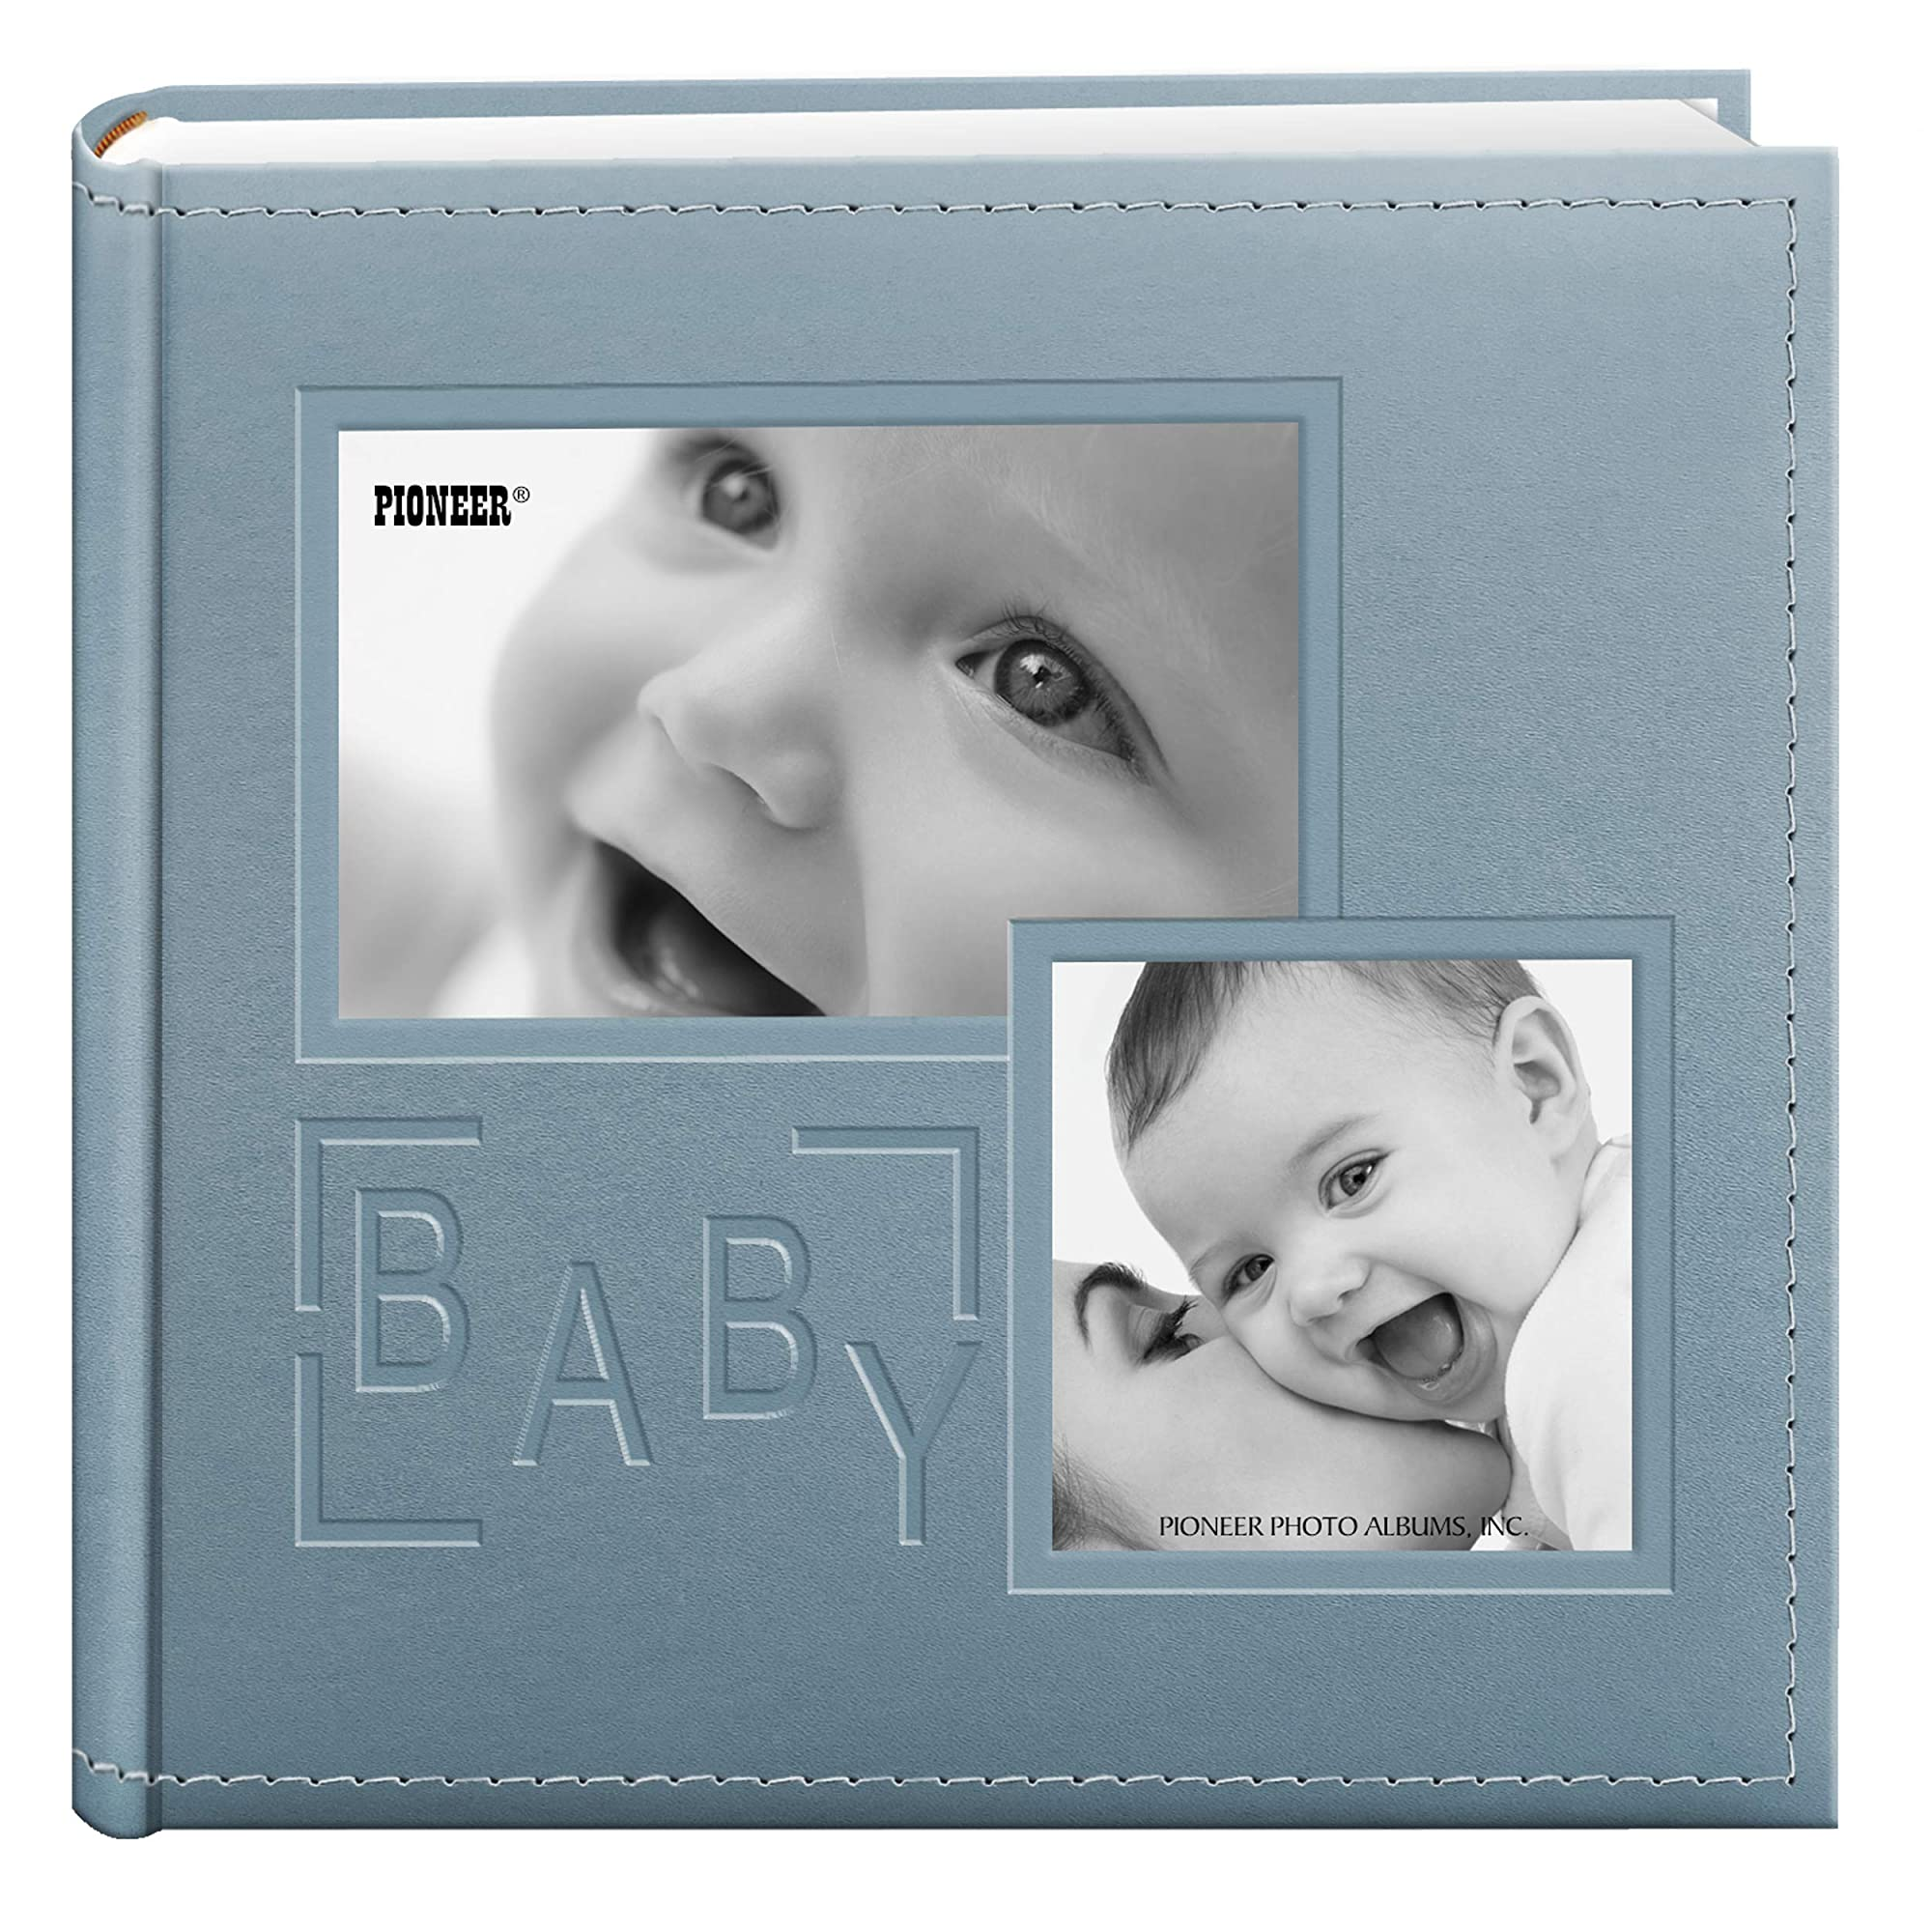 "4"" X 6"" Leather Frame Photo Album Holds 200 Pictures"